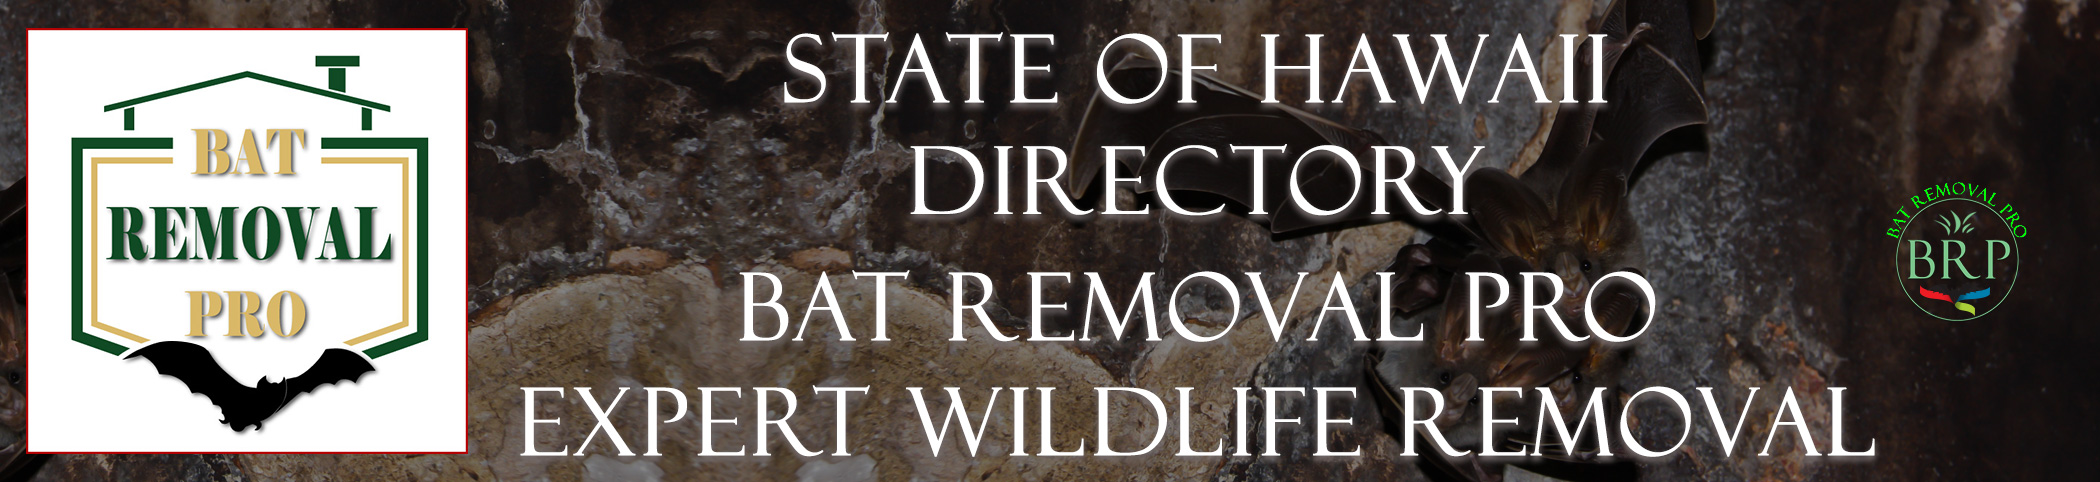 hawaii-bat-removal-at-bat-removal-pro